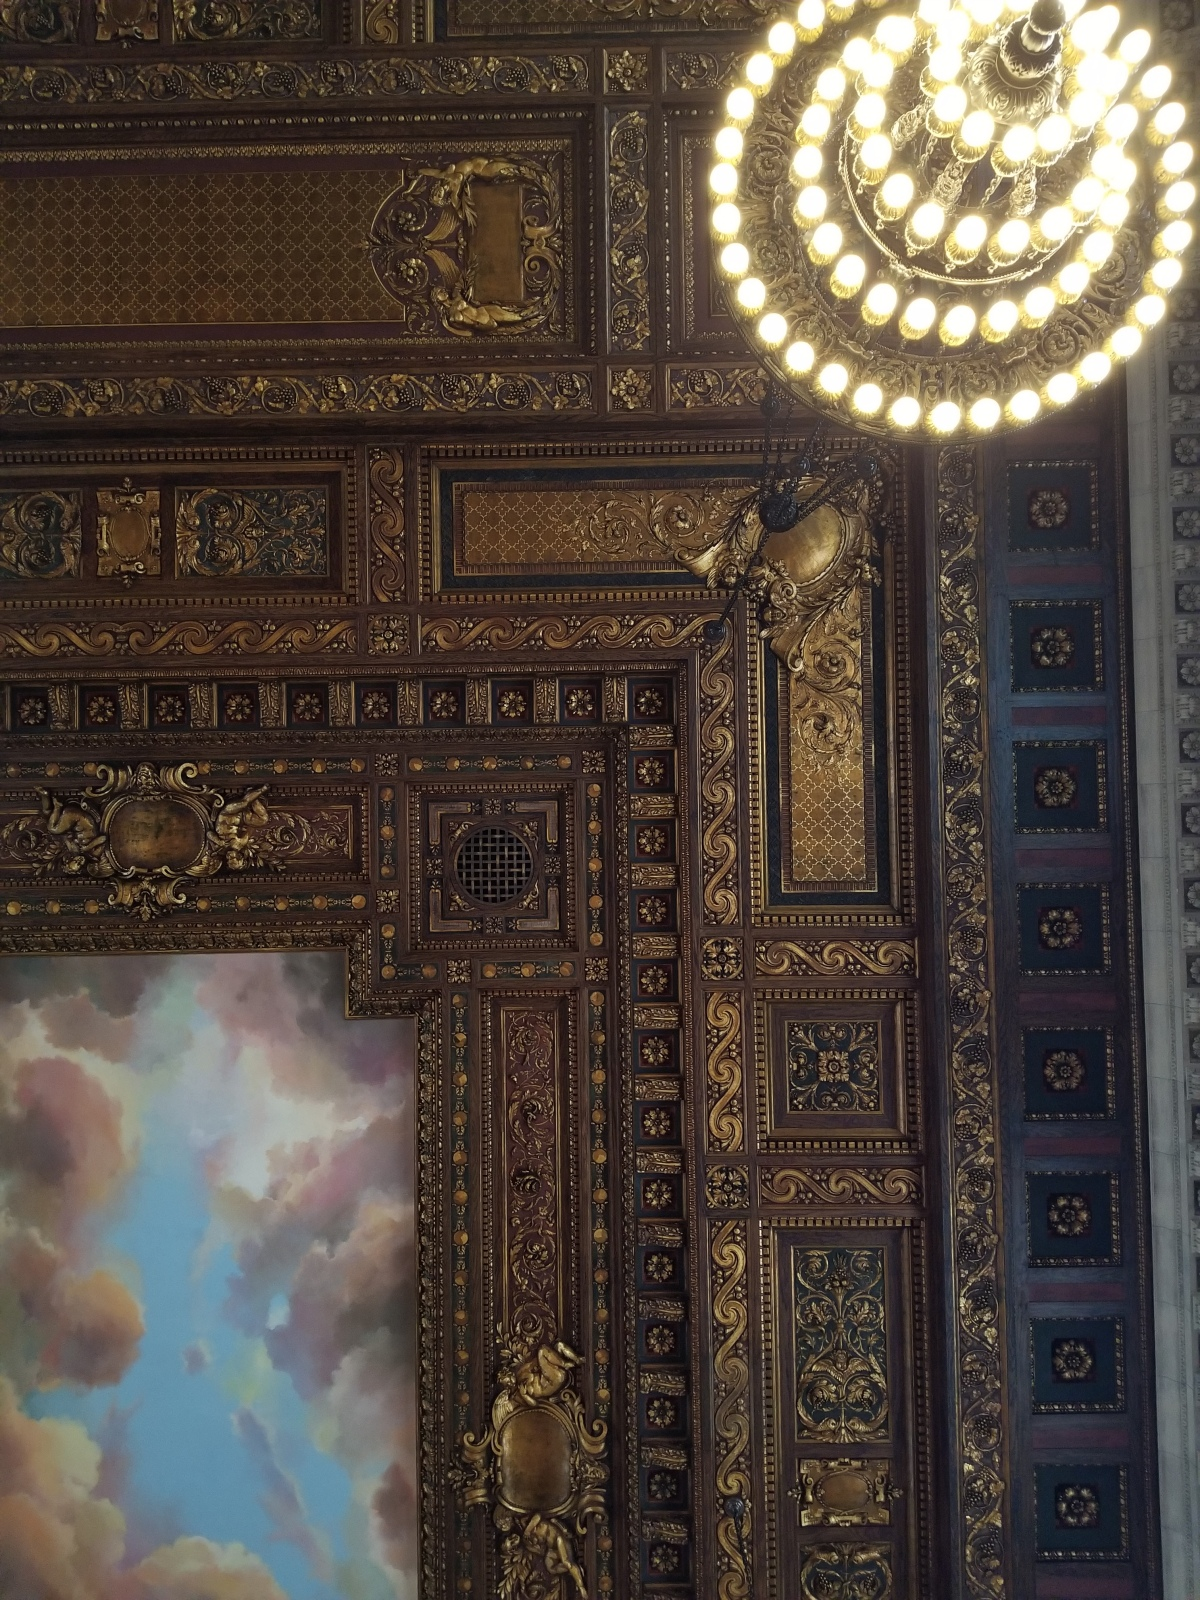 Ceiling of the Rose room atNYPL